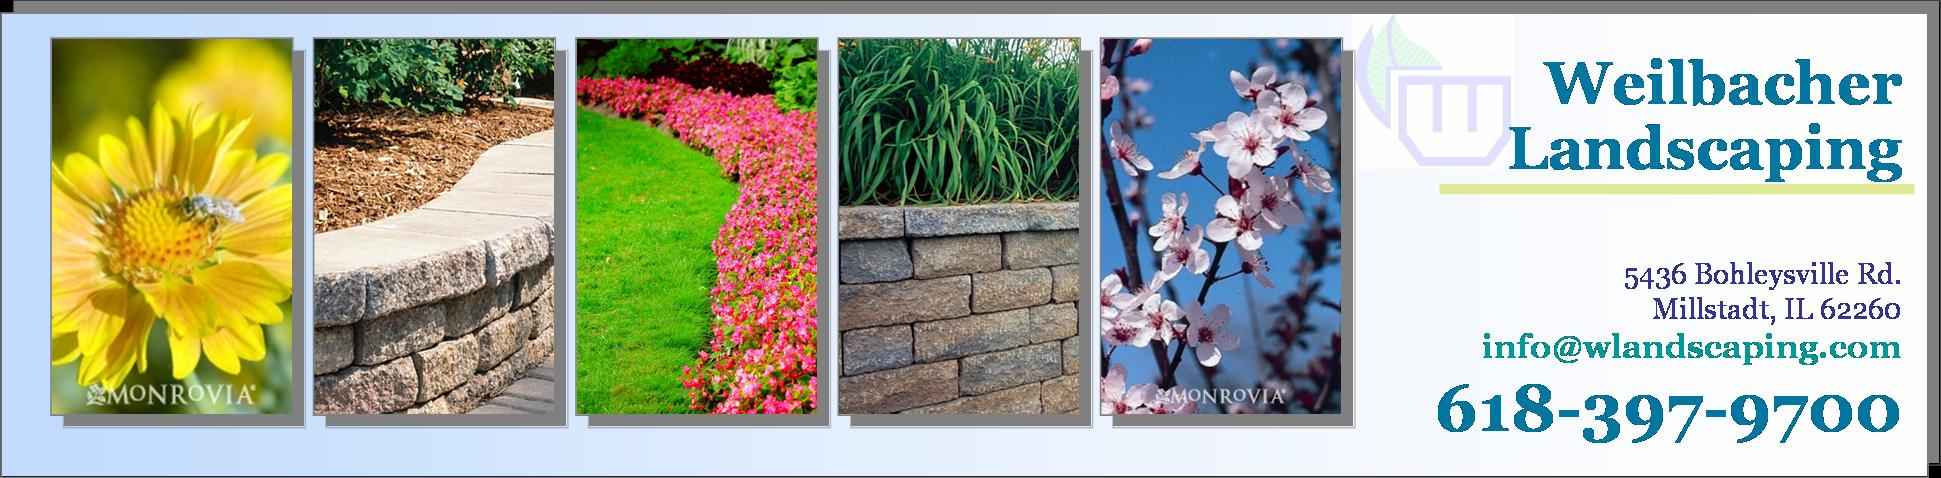 How to Increase Your Home's Curb Appeal: An Interview with Andy Weilbacher of Weilbacher Landscaping